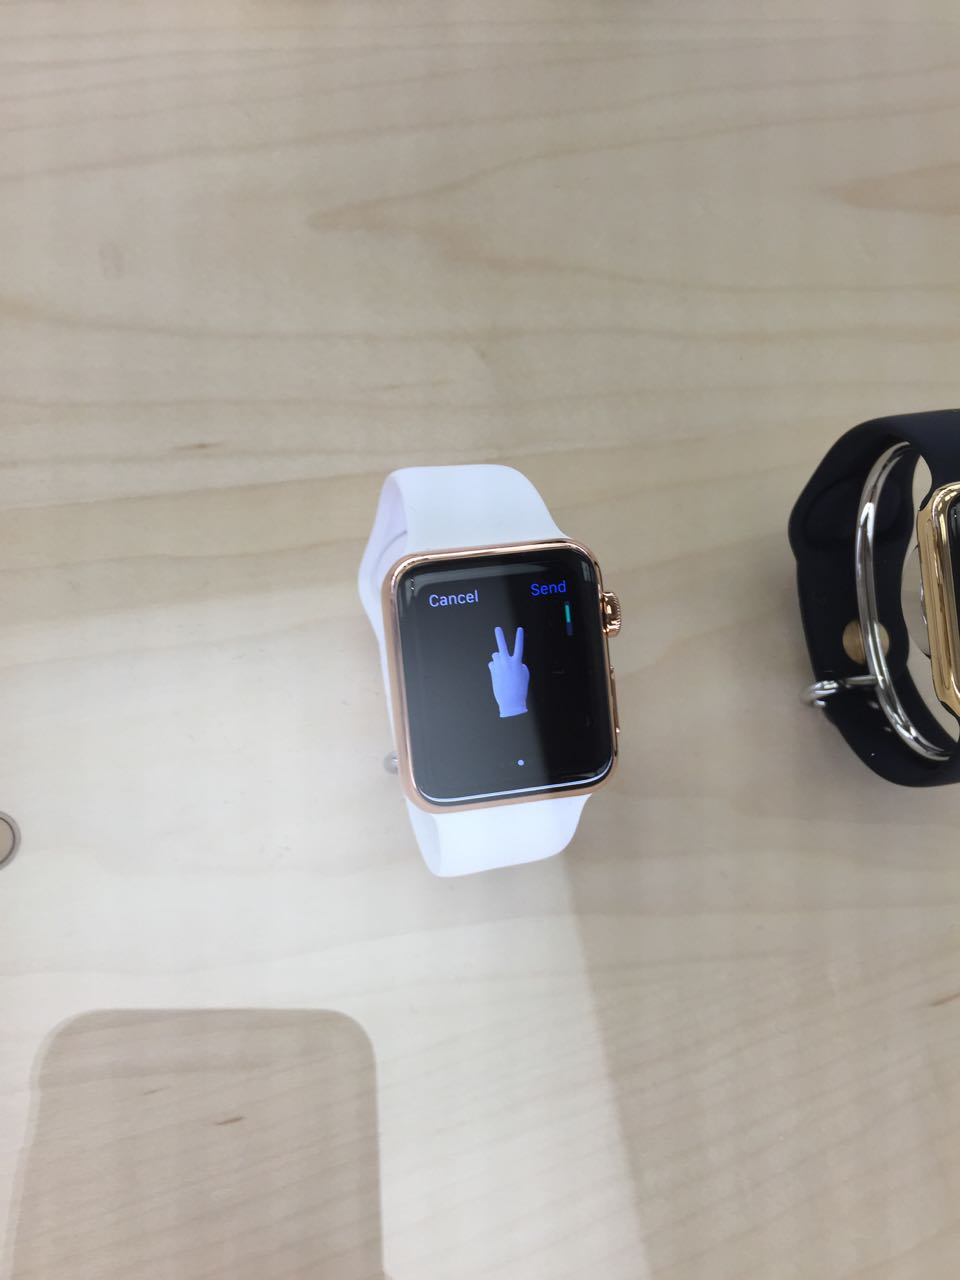 apple_watch_apple Store5.jpg